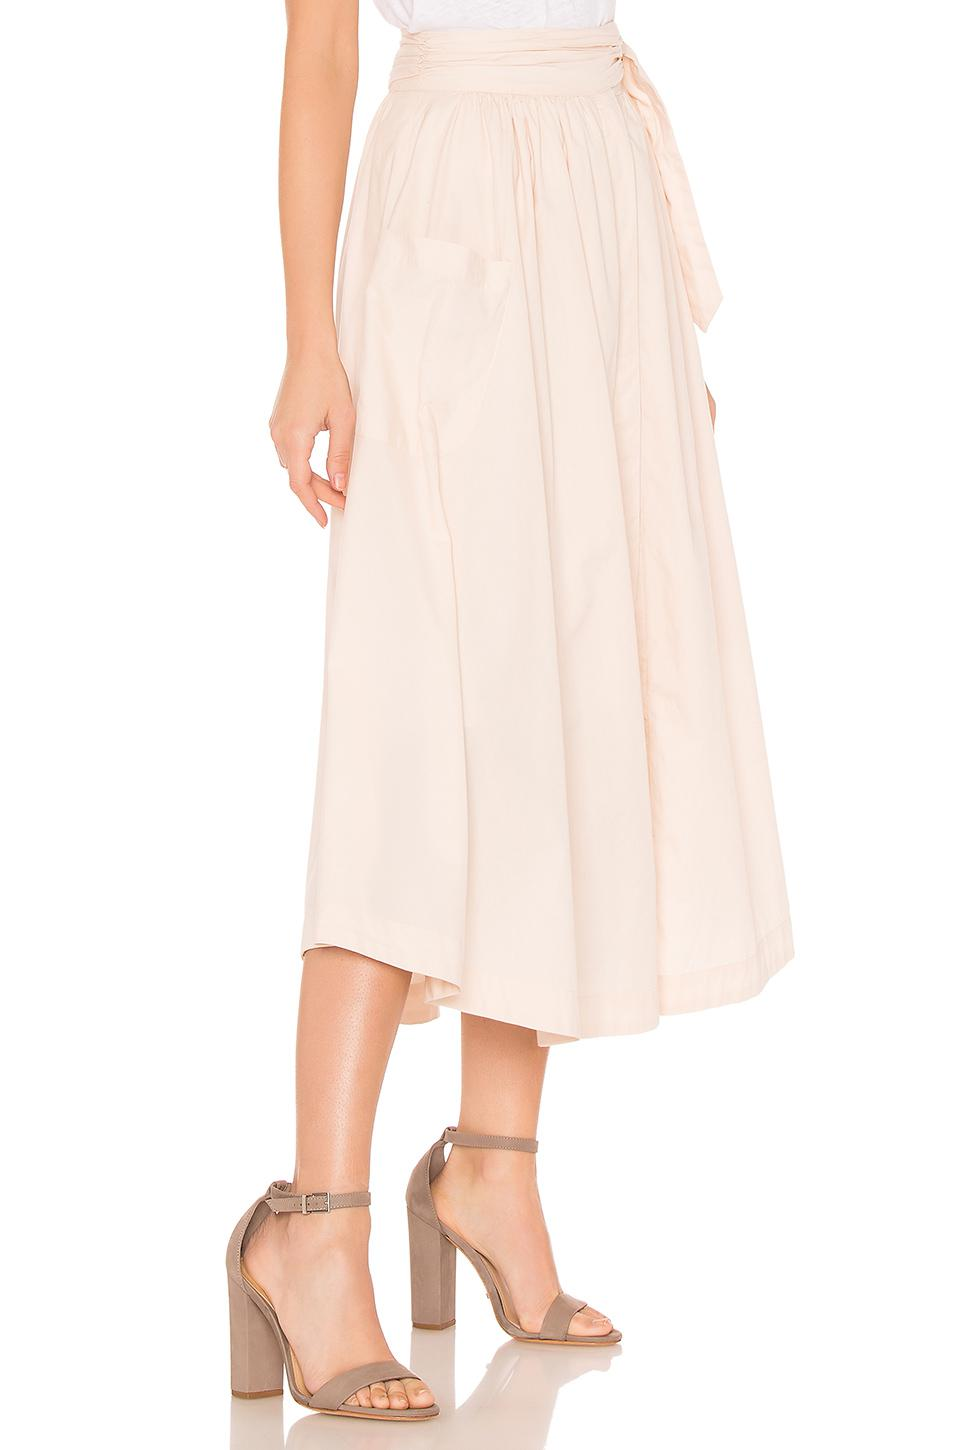 a53a5d8713 Lyst - Free People Dream Of Me Midi Skirt in Pink